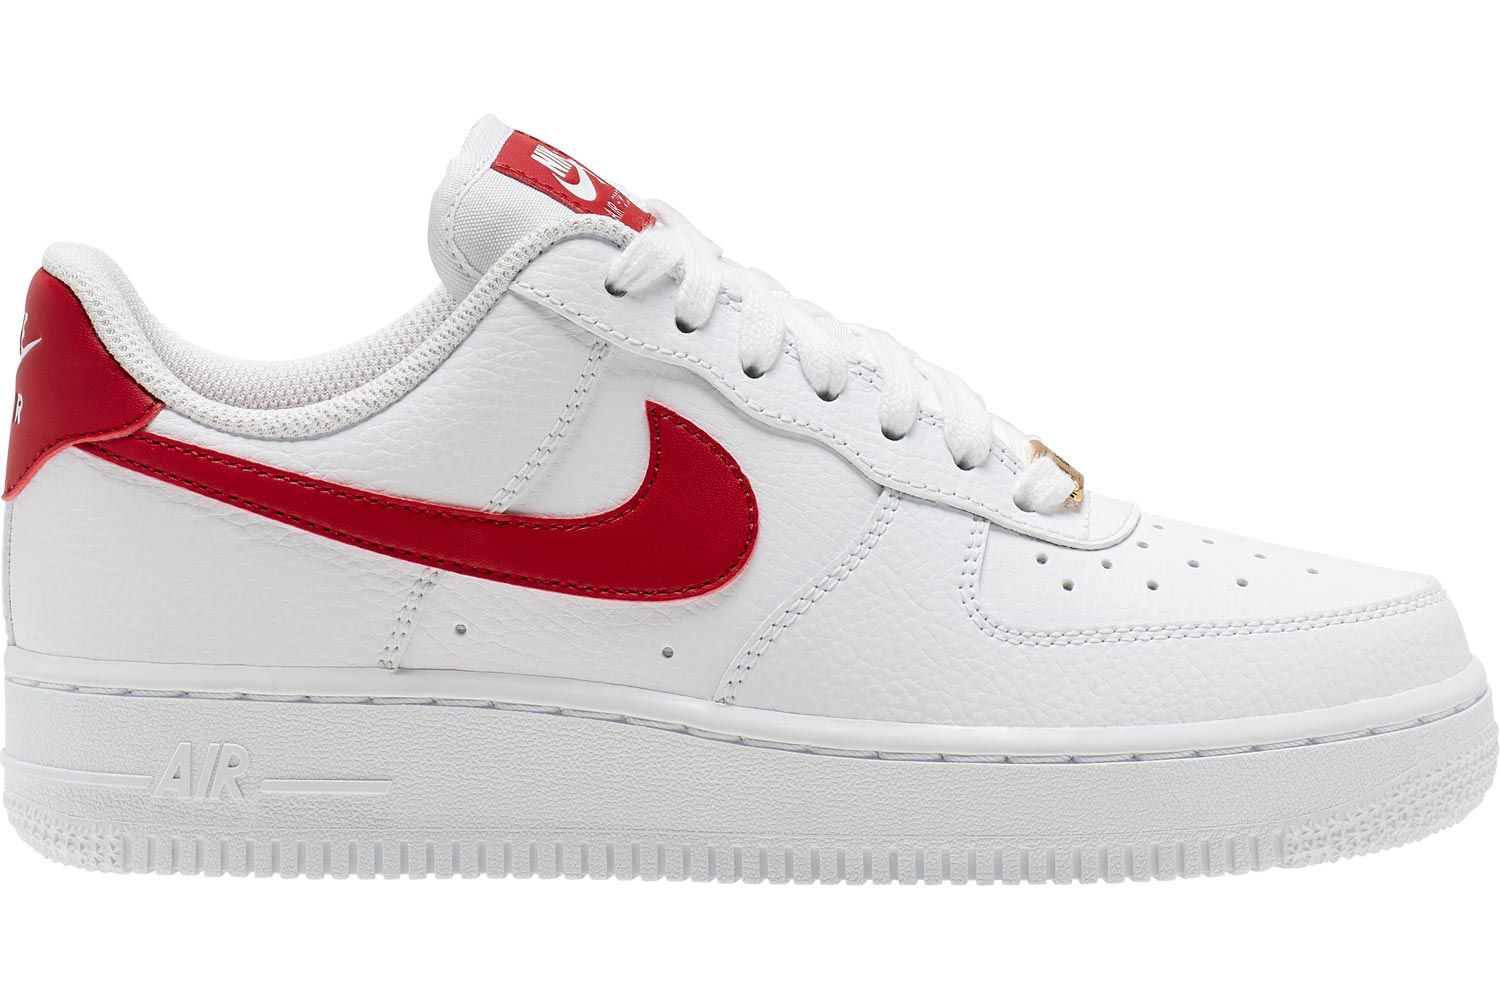 nike air force 1 07 w schoenen wit rood,nike air force rood ...